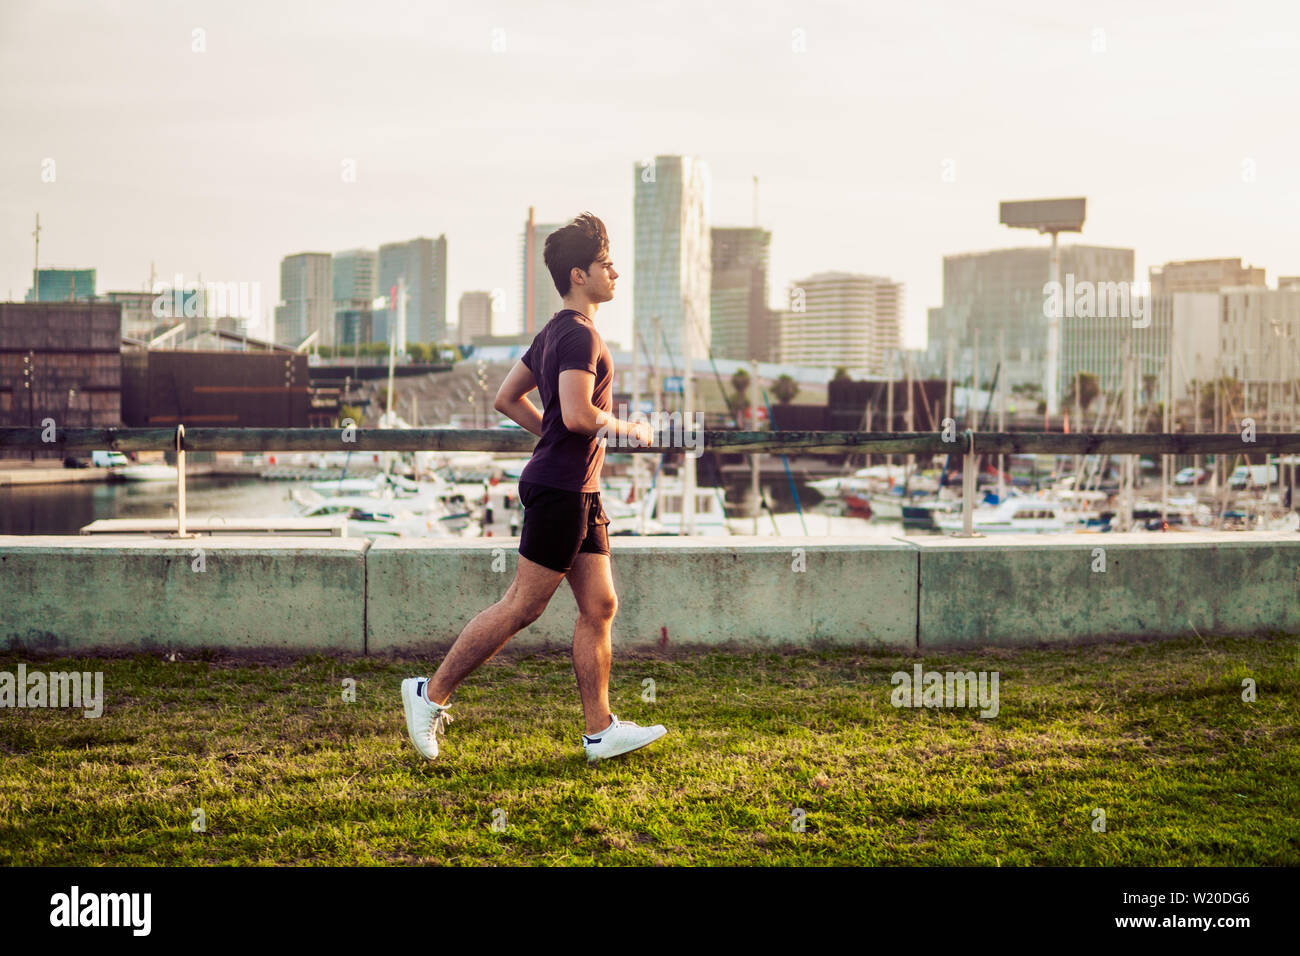 Young athletic man running at park with skyscrapers background Stock Photo